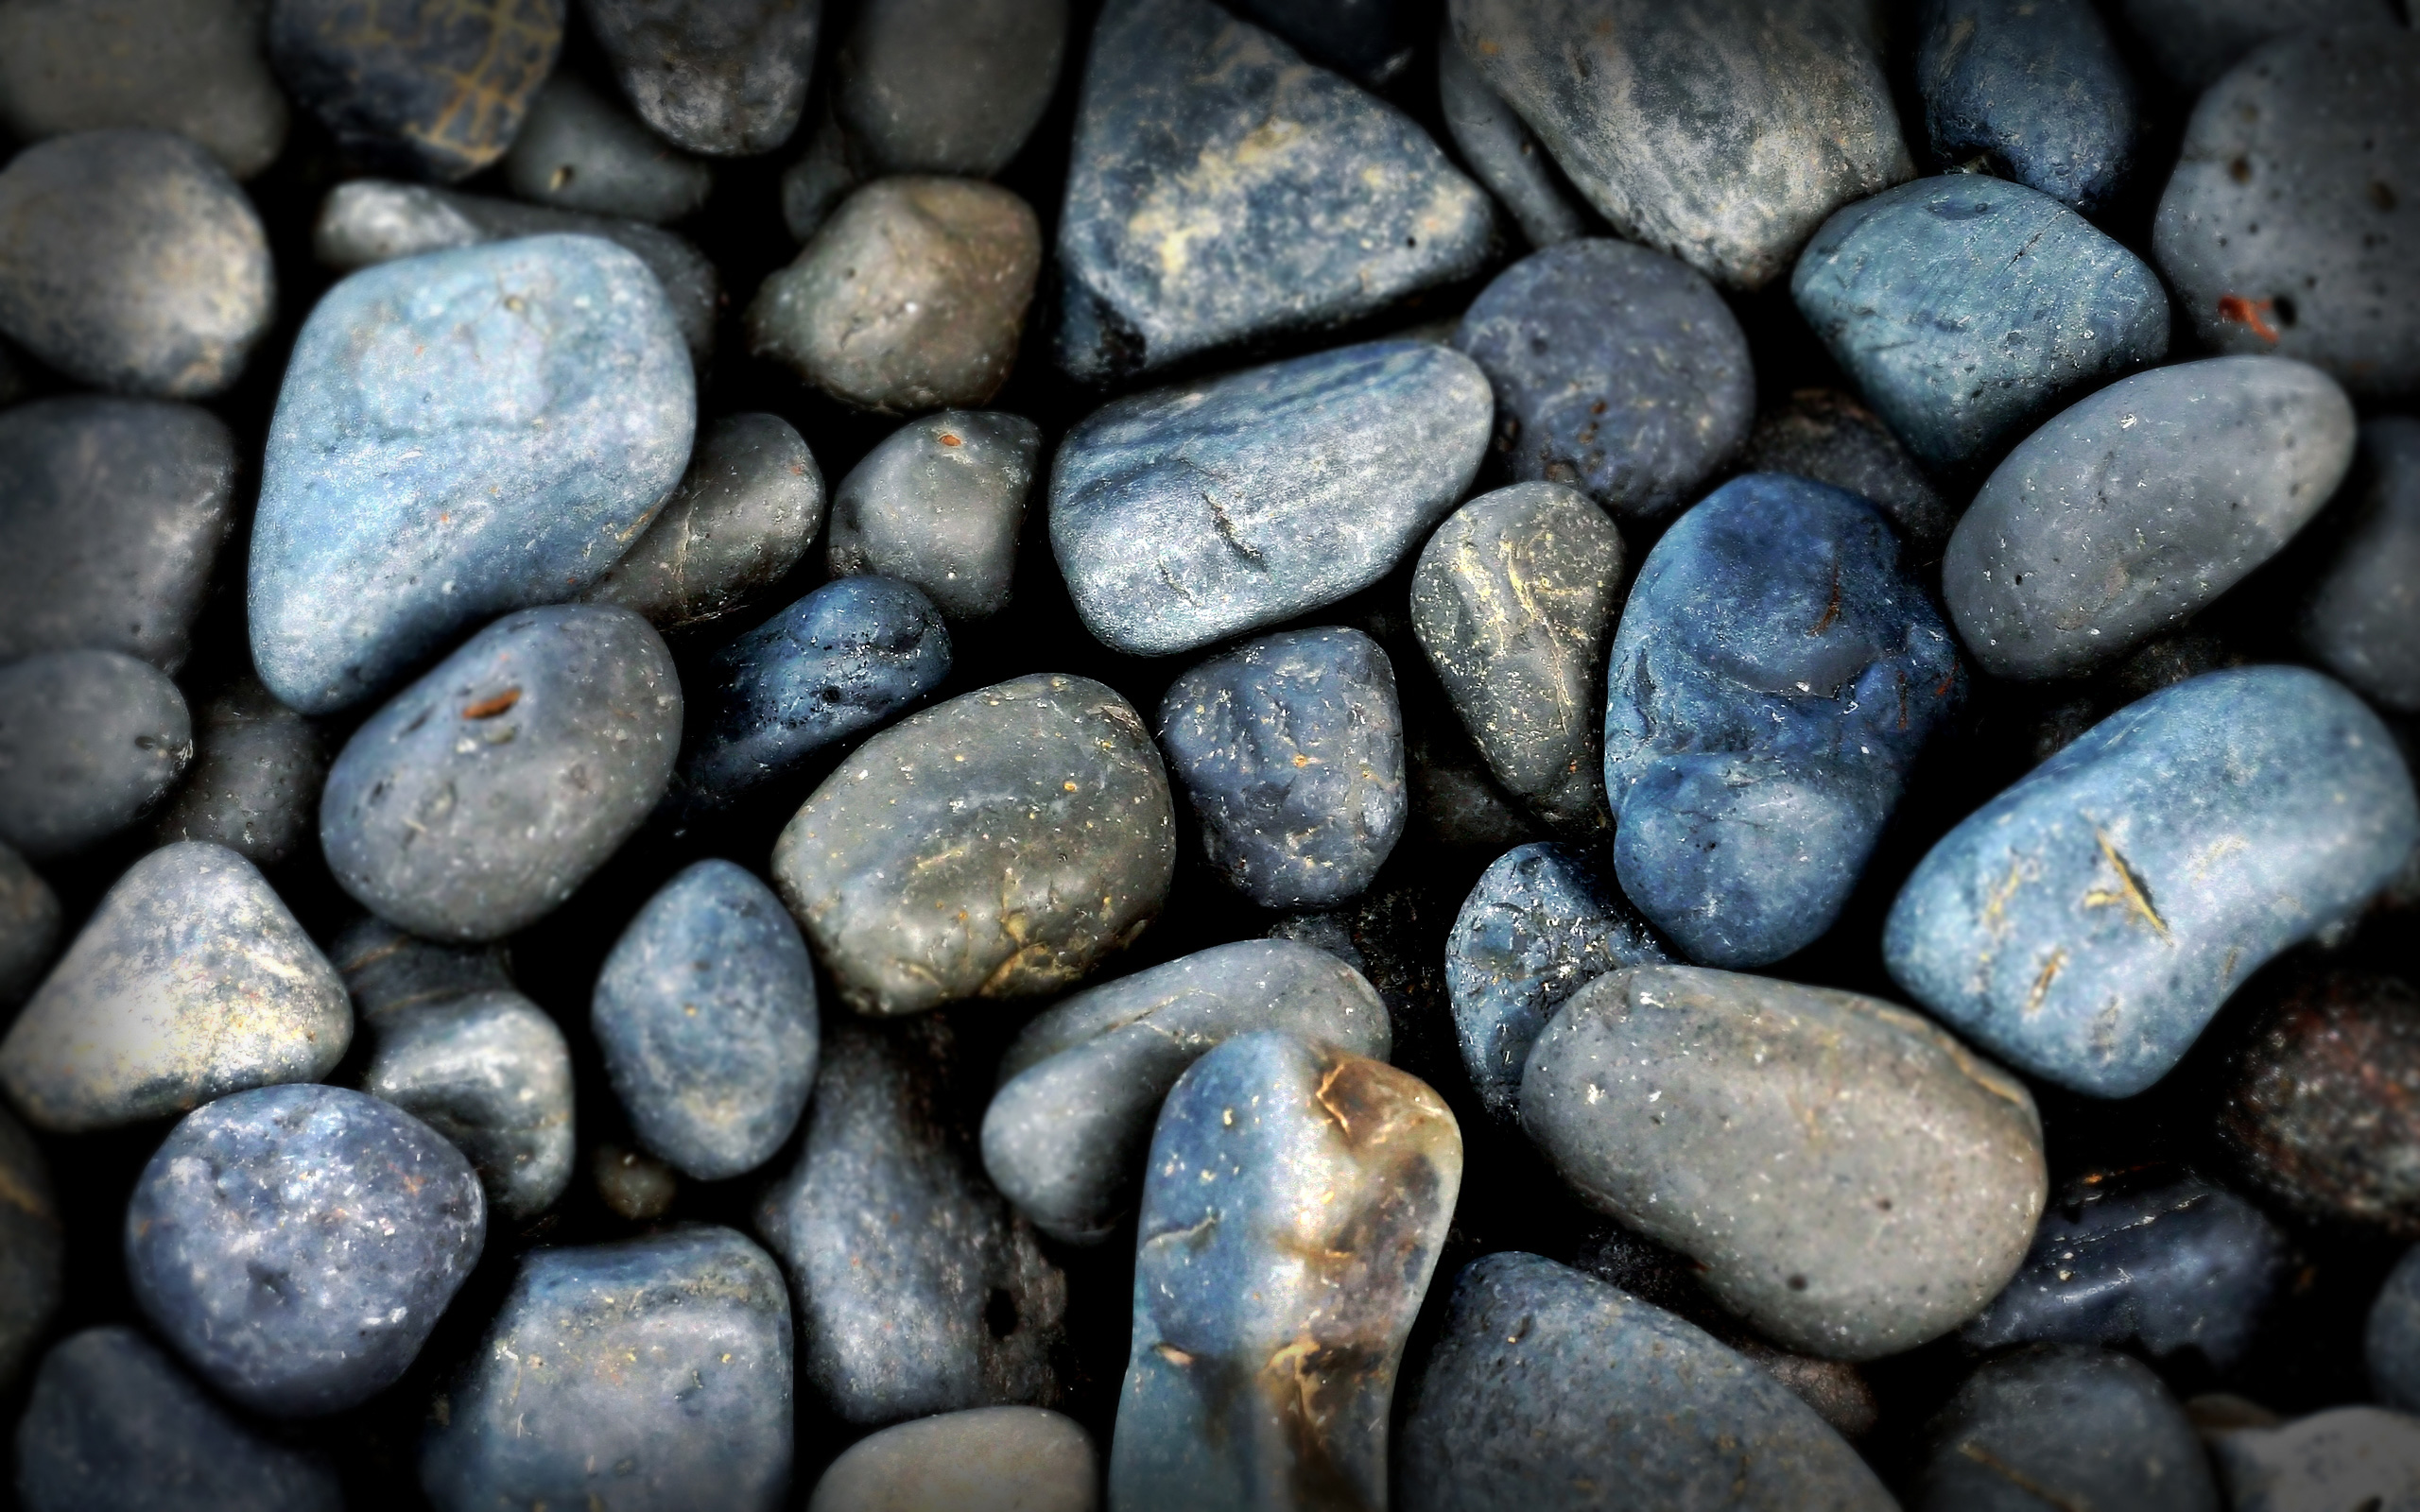 HD Quality Live Pebble Backgrounds - 27413541, Nick Westra